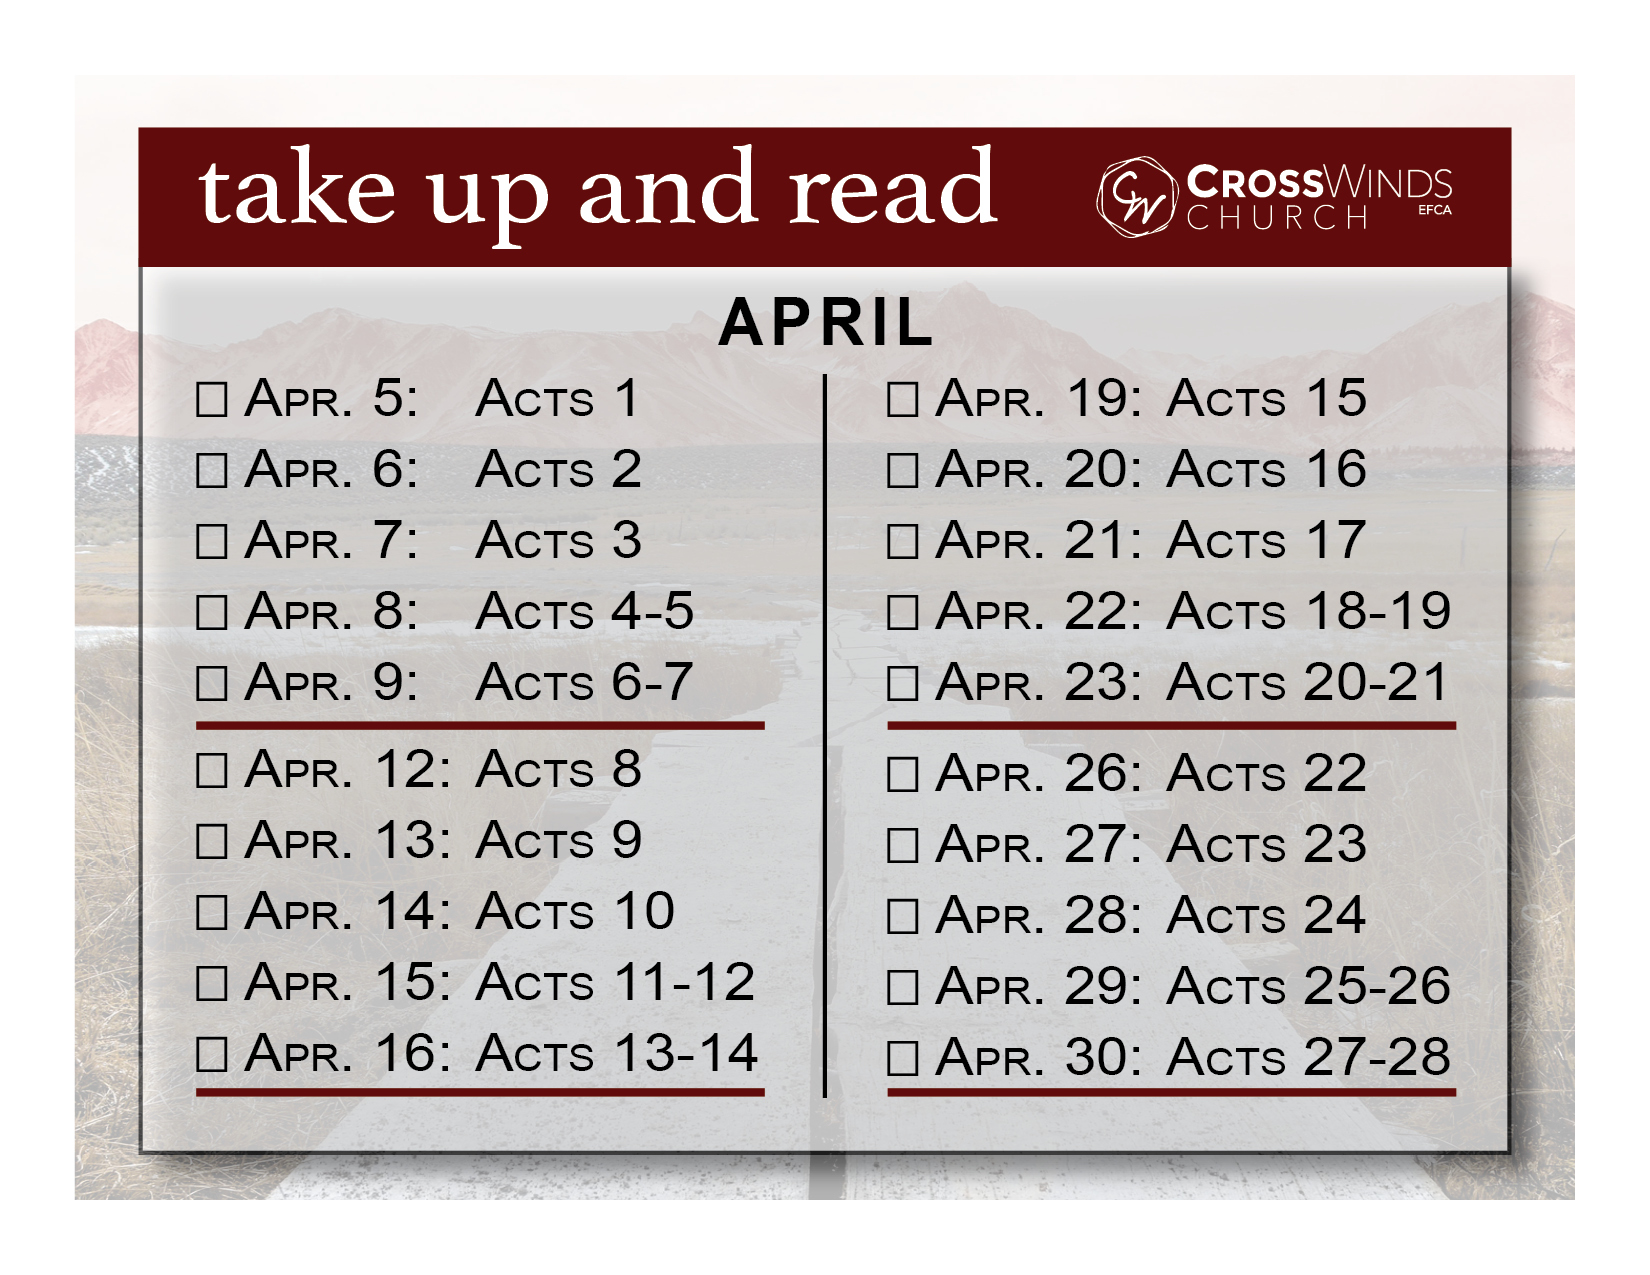 take up and read card april 2021, Acts